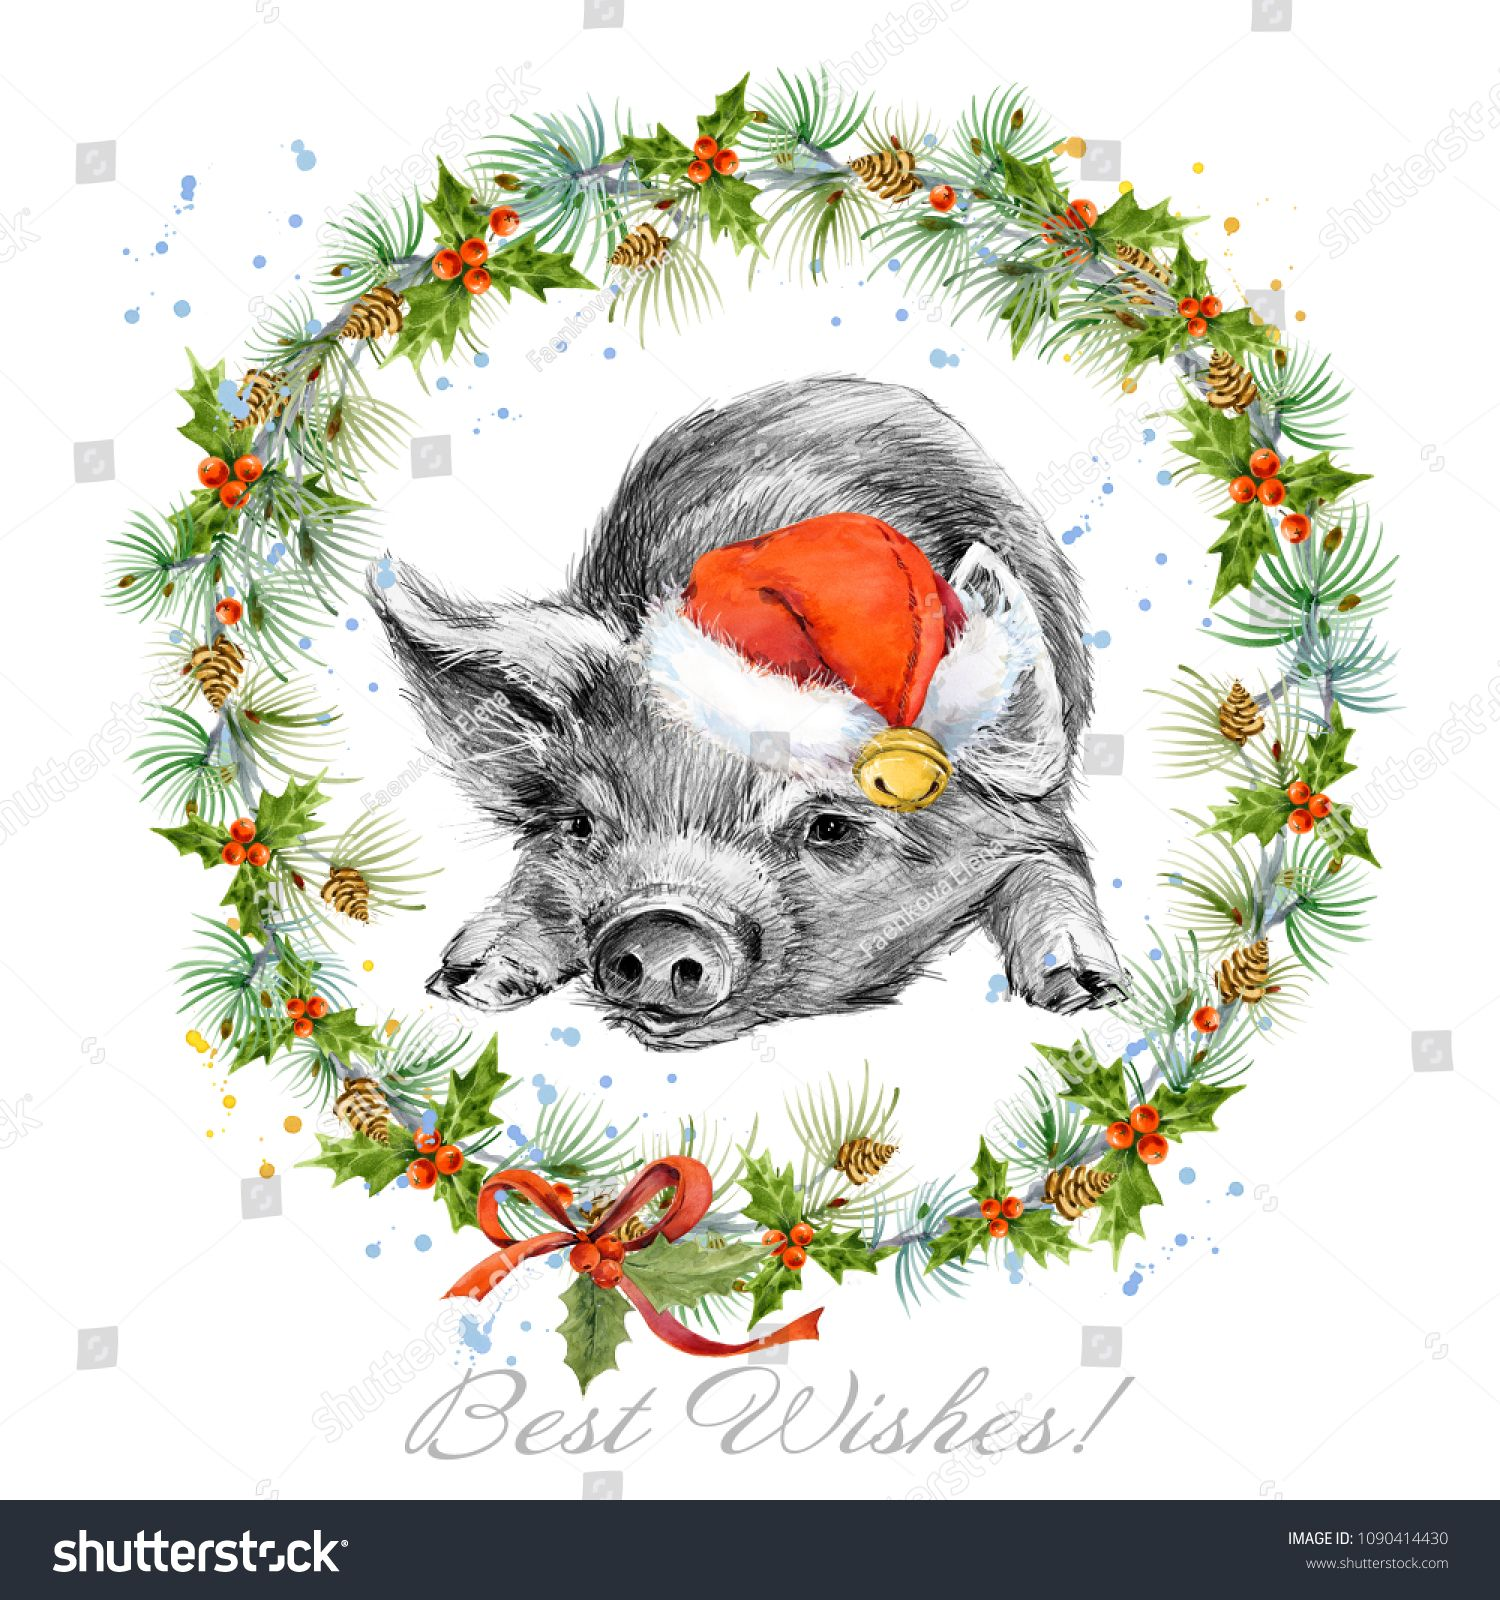 Year of the pig. watercolor hand drawn pigglet illustration. Winter ...